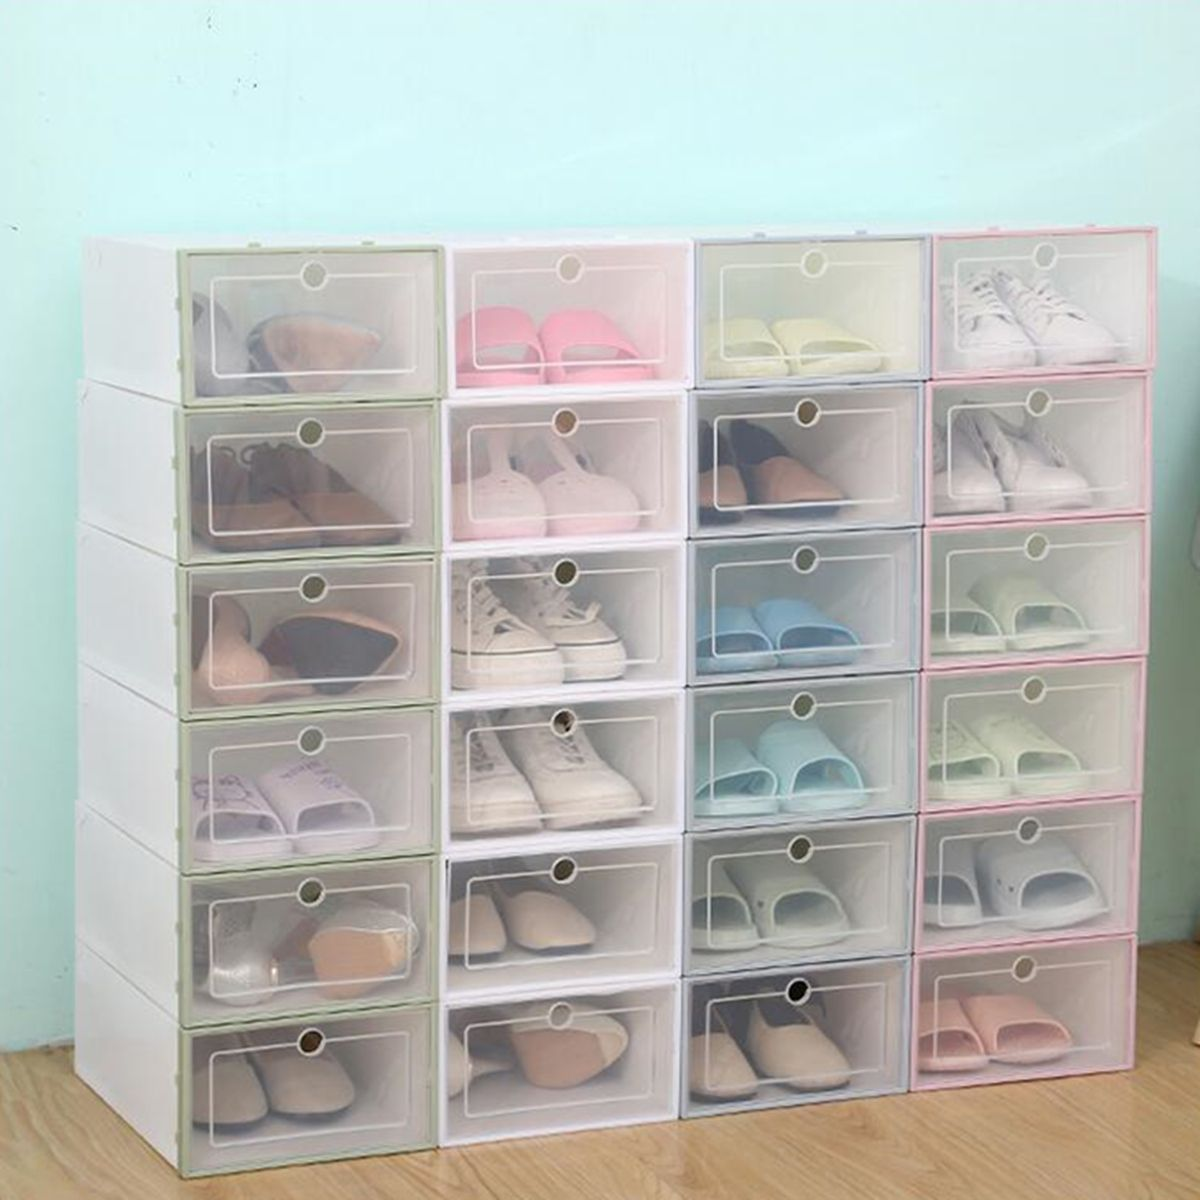 Foldable Clear Plastic Shoe Boxes Case Stackable Tidy Display Storage Organizer Single Box Hot Tren Plastic Shoe Boxes Clear Plastic Shoe Boxes Plastic Shoes